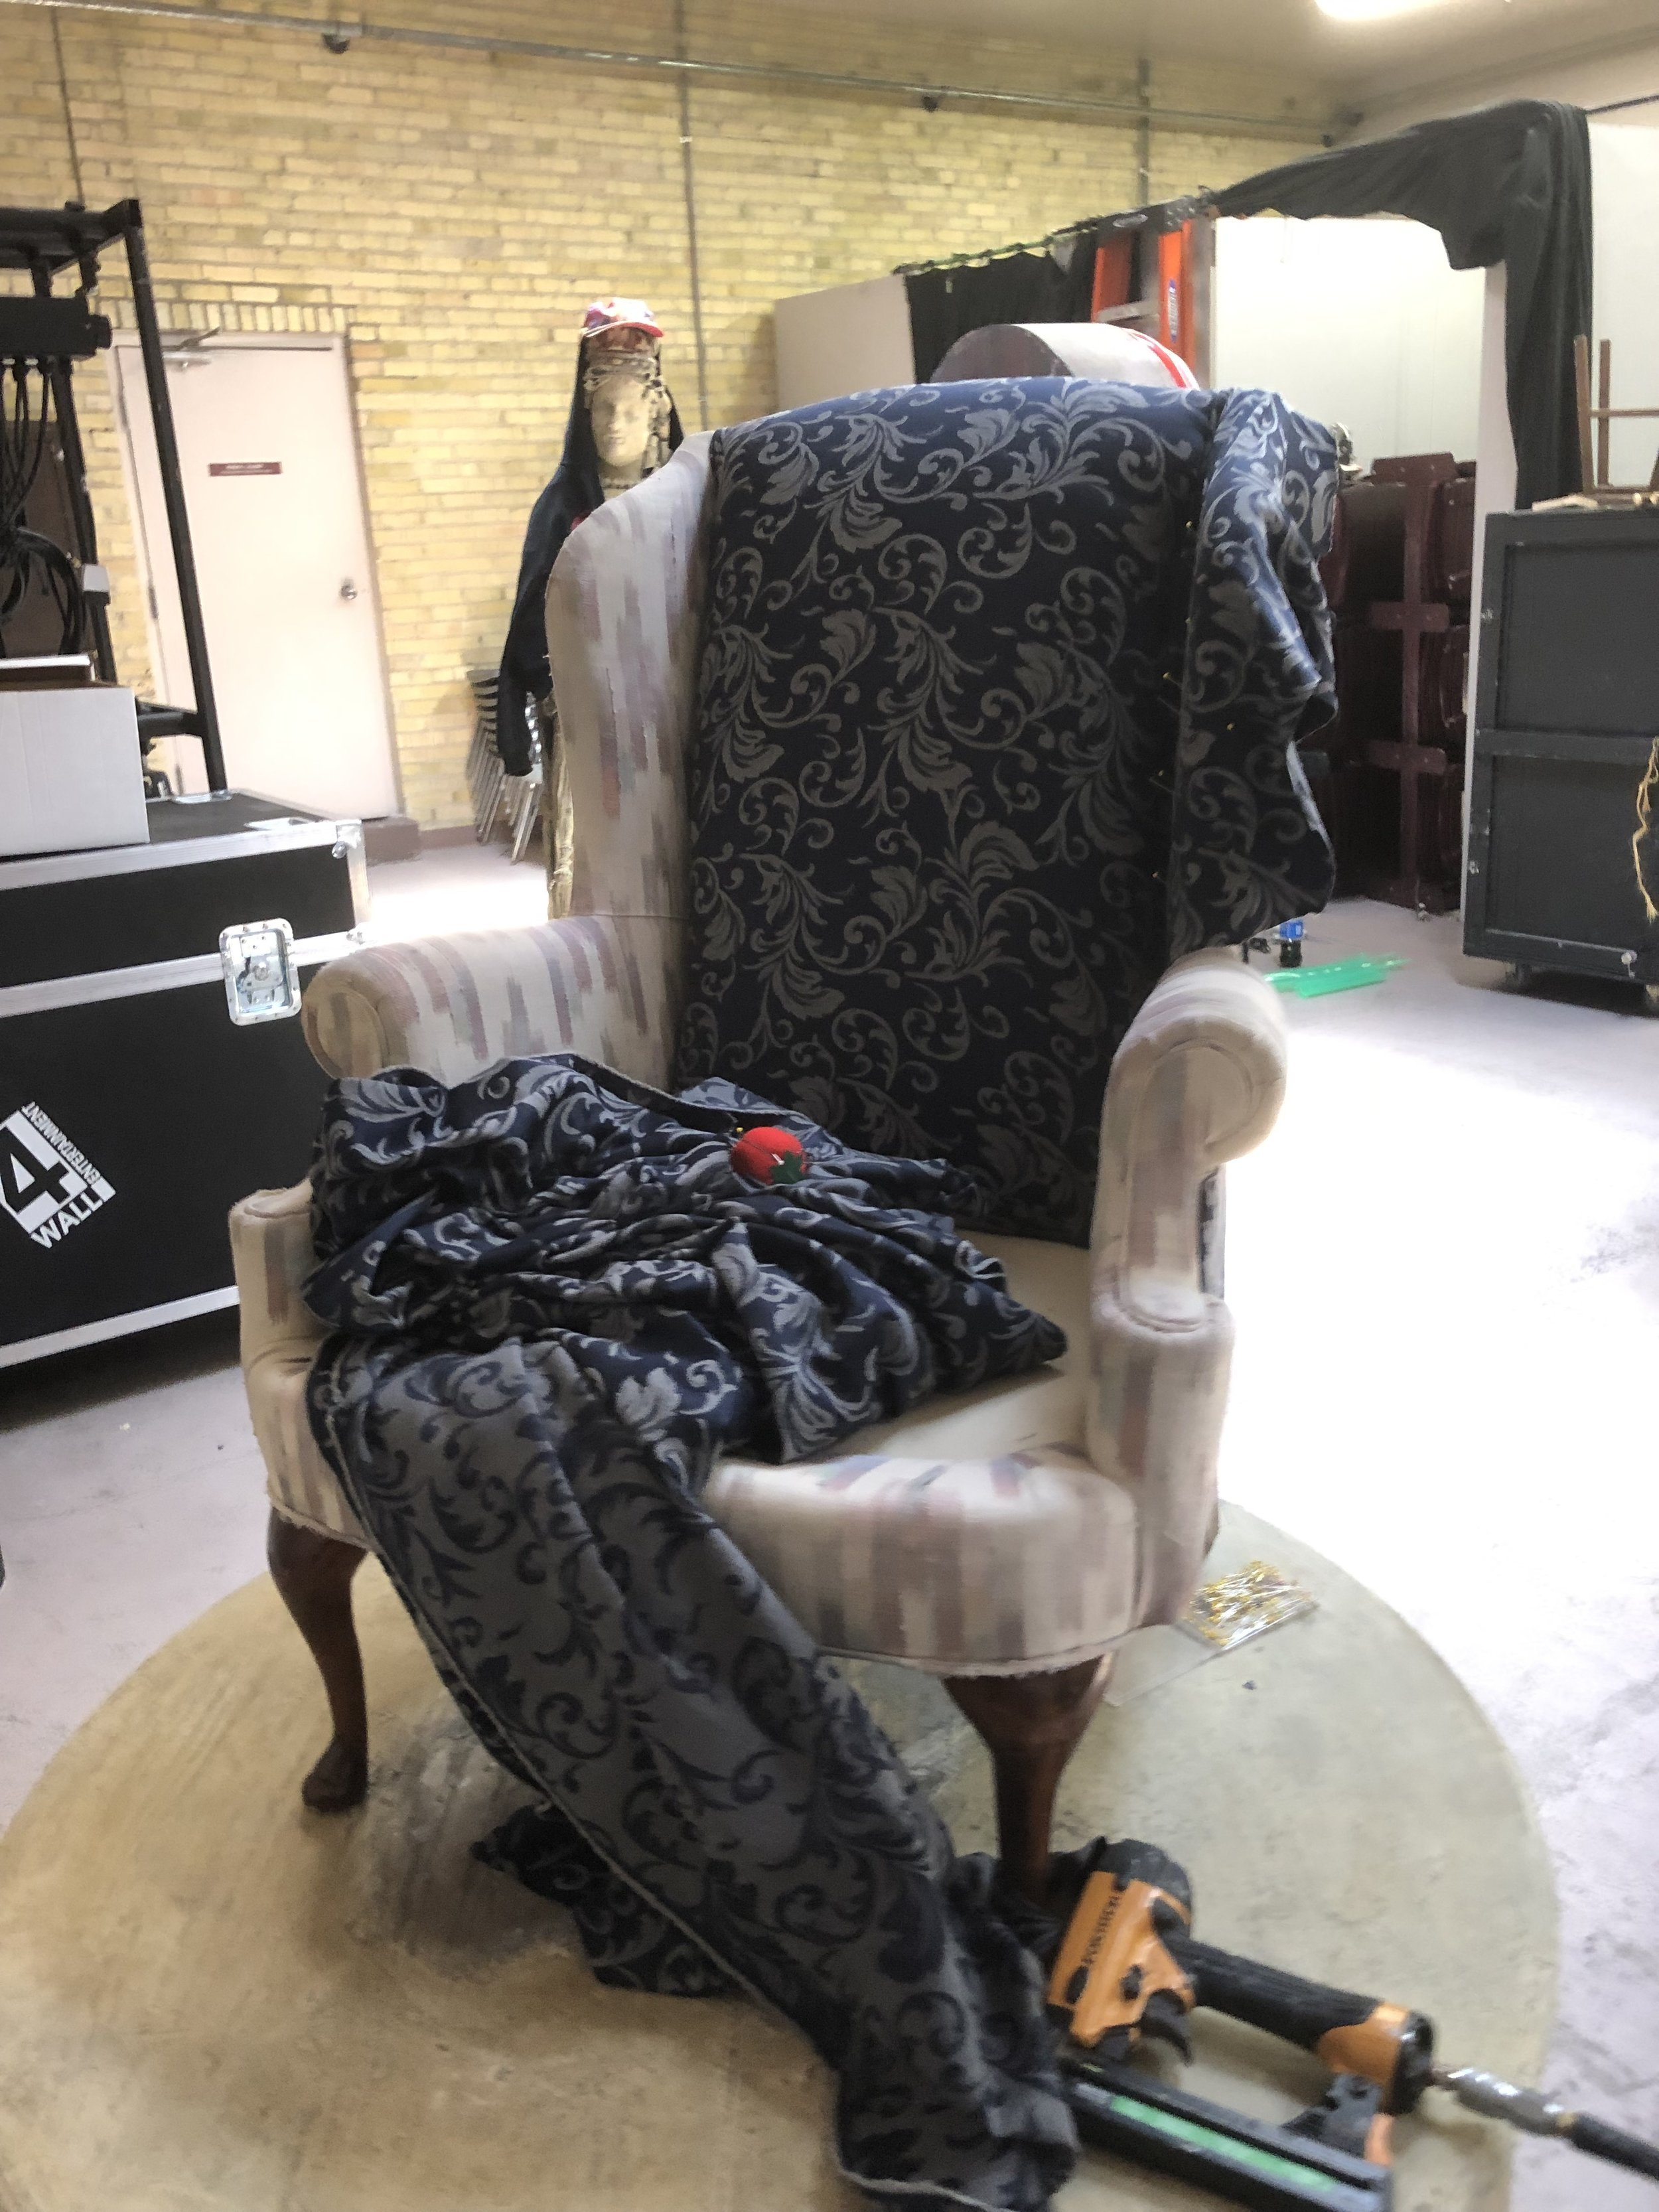 Wing-back Arm Chair  Fabric Recover   Marriage of Figaro   Utah Festival Opera and Musical Theatre, 2019